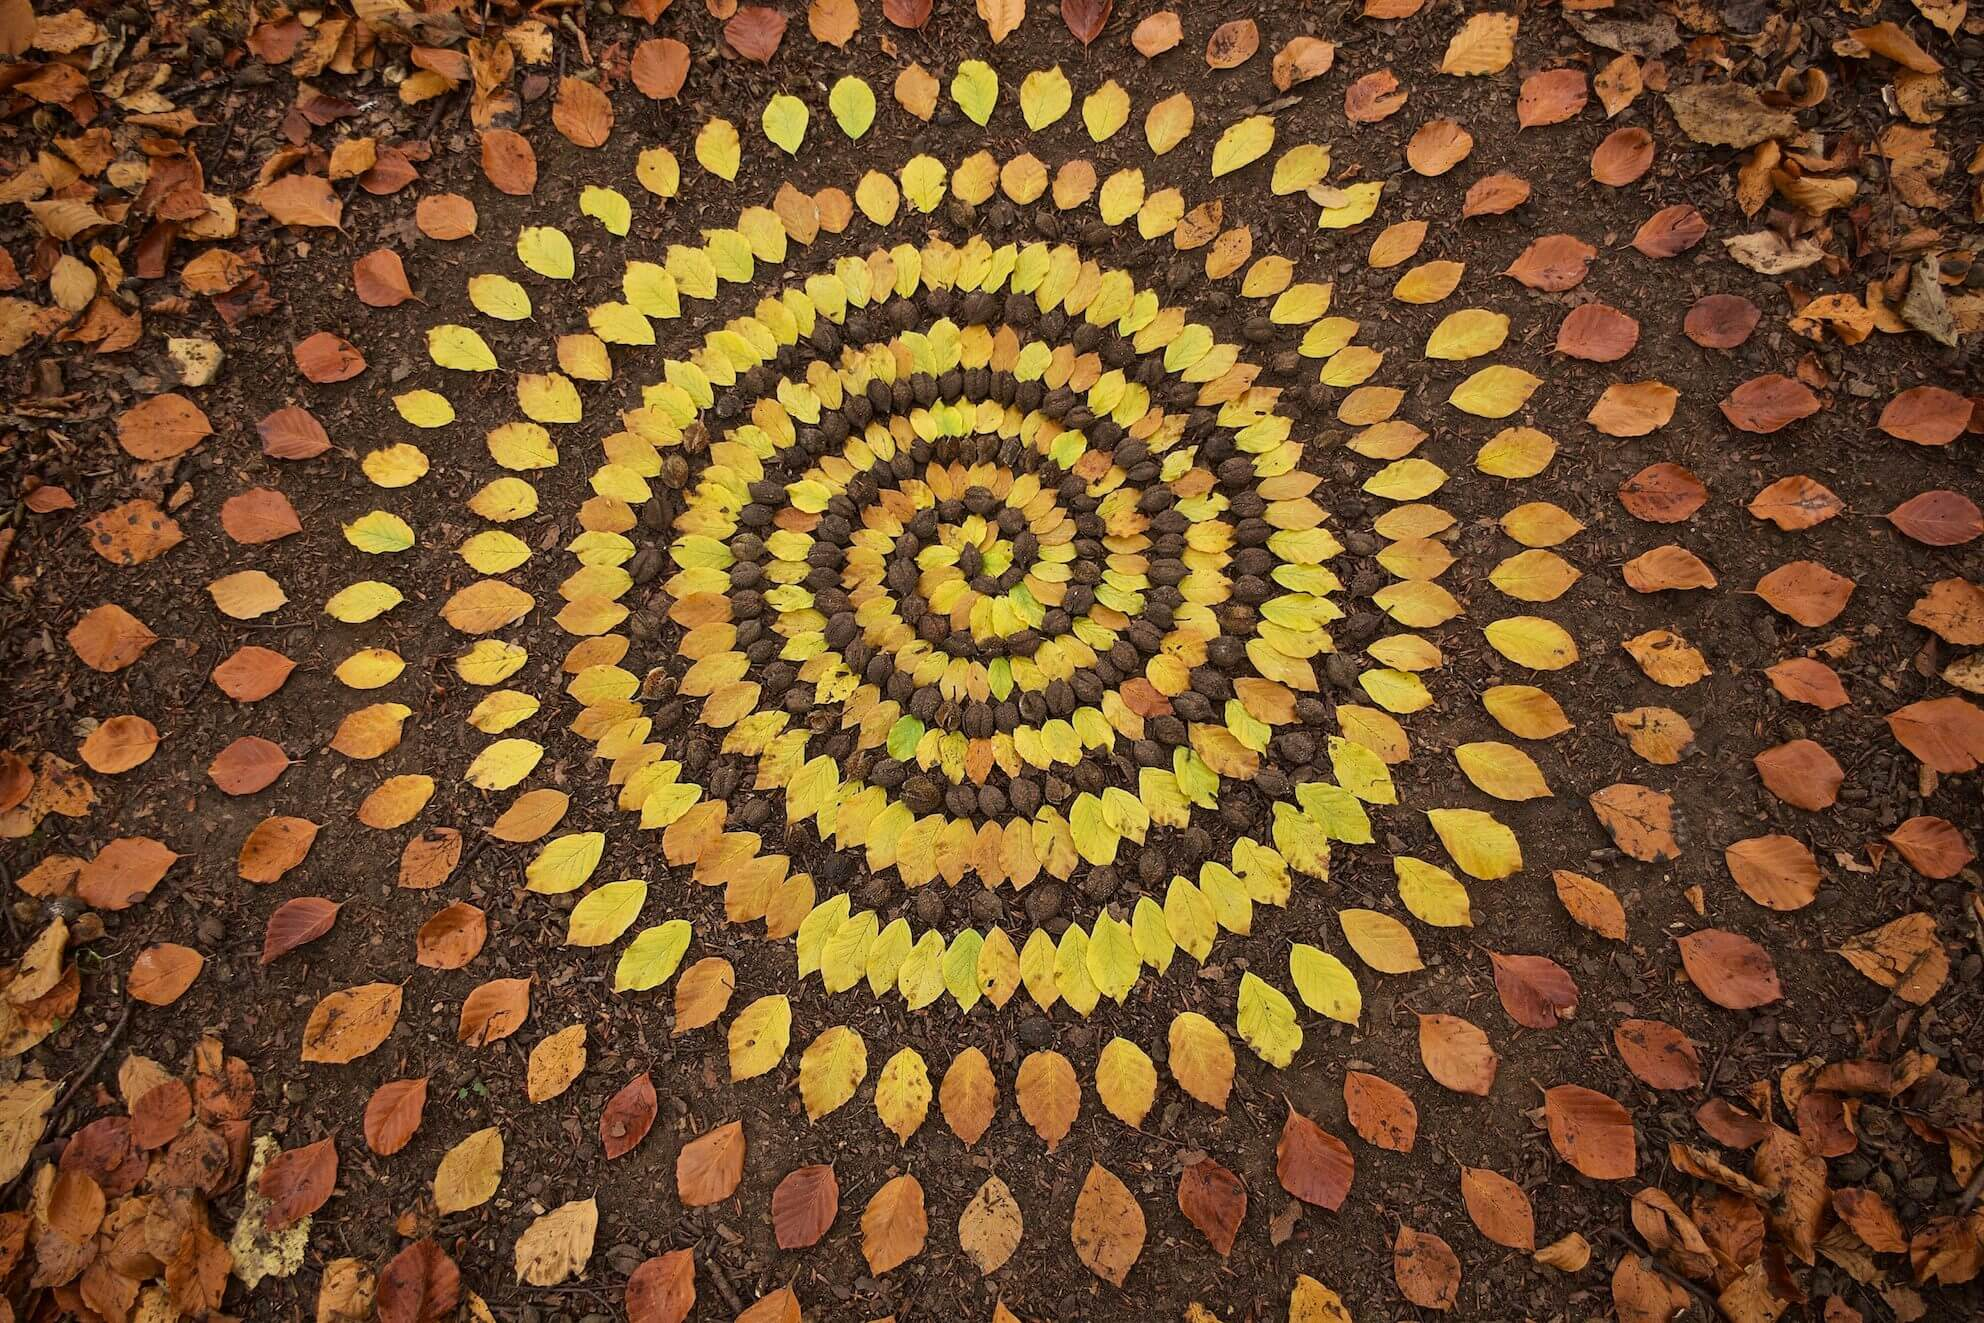 Even spiraling leaves can look like a work of art